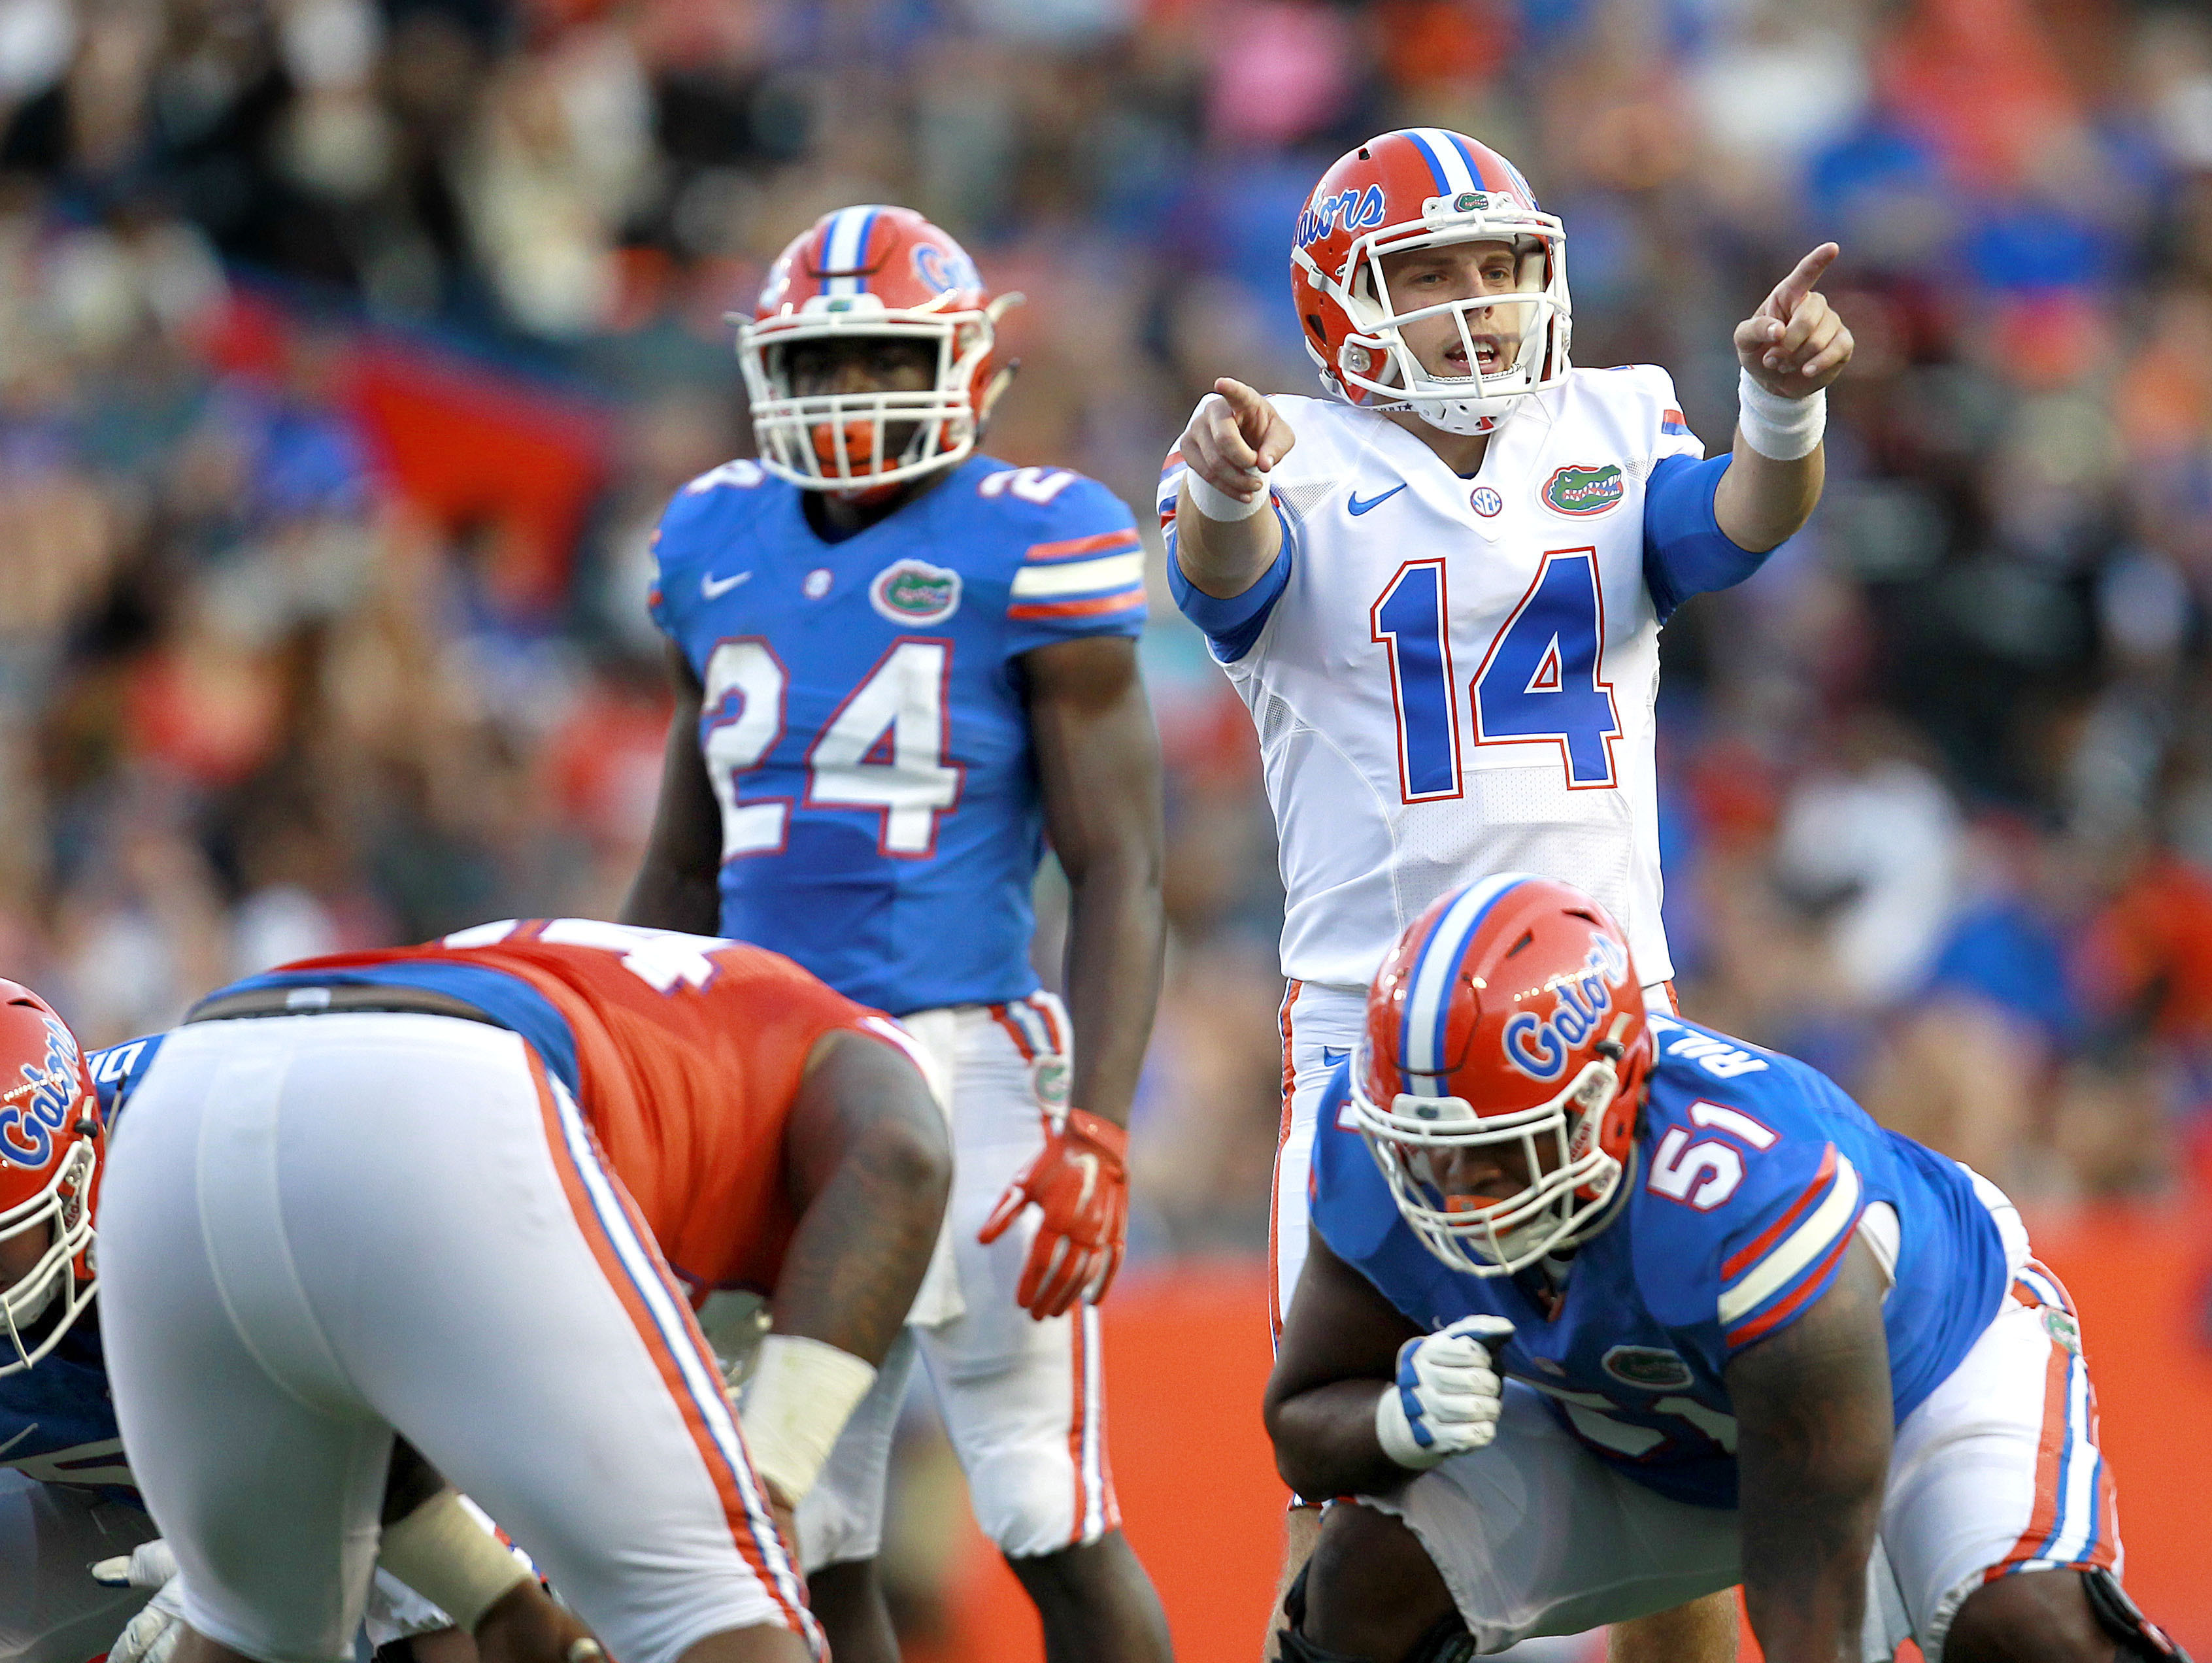 FILE - In this April 8, 2016, file photo, Florida quarterback Luke Del Rio points out defenders during the Orange and Blue Debut Spring Game at Ben Hill Griffin Stadium in Gainesville, Fla. Del Rio, the son of Oakland Raiders coach Jack Del Rio, is the fr